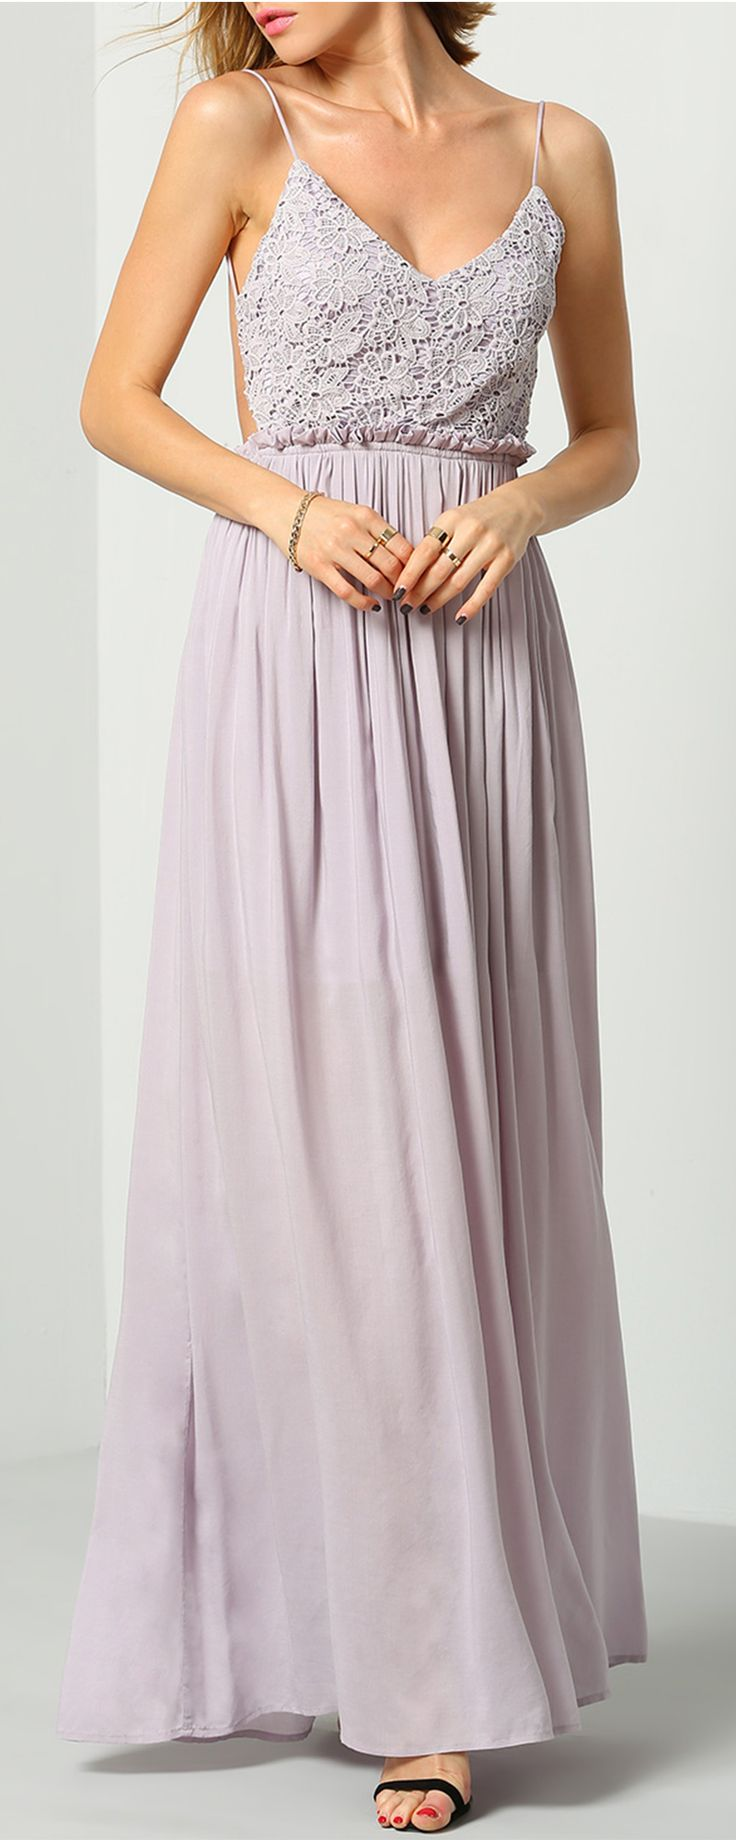 Check it out from shein.com! shein's Exclusive! As pretty as an urban wildflower, the Rooftop Garden Backless Lavender Maxi Dress lights up the skyline with lengths of light purple chiffon. A fitted, triangle-cut bodice has spaghetti straps that crisscross a sexy open back, while a maxi-length skirt flows from the banded waistline like a flower bed in bloom!